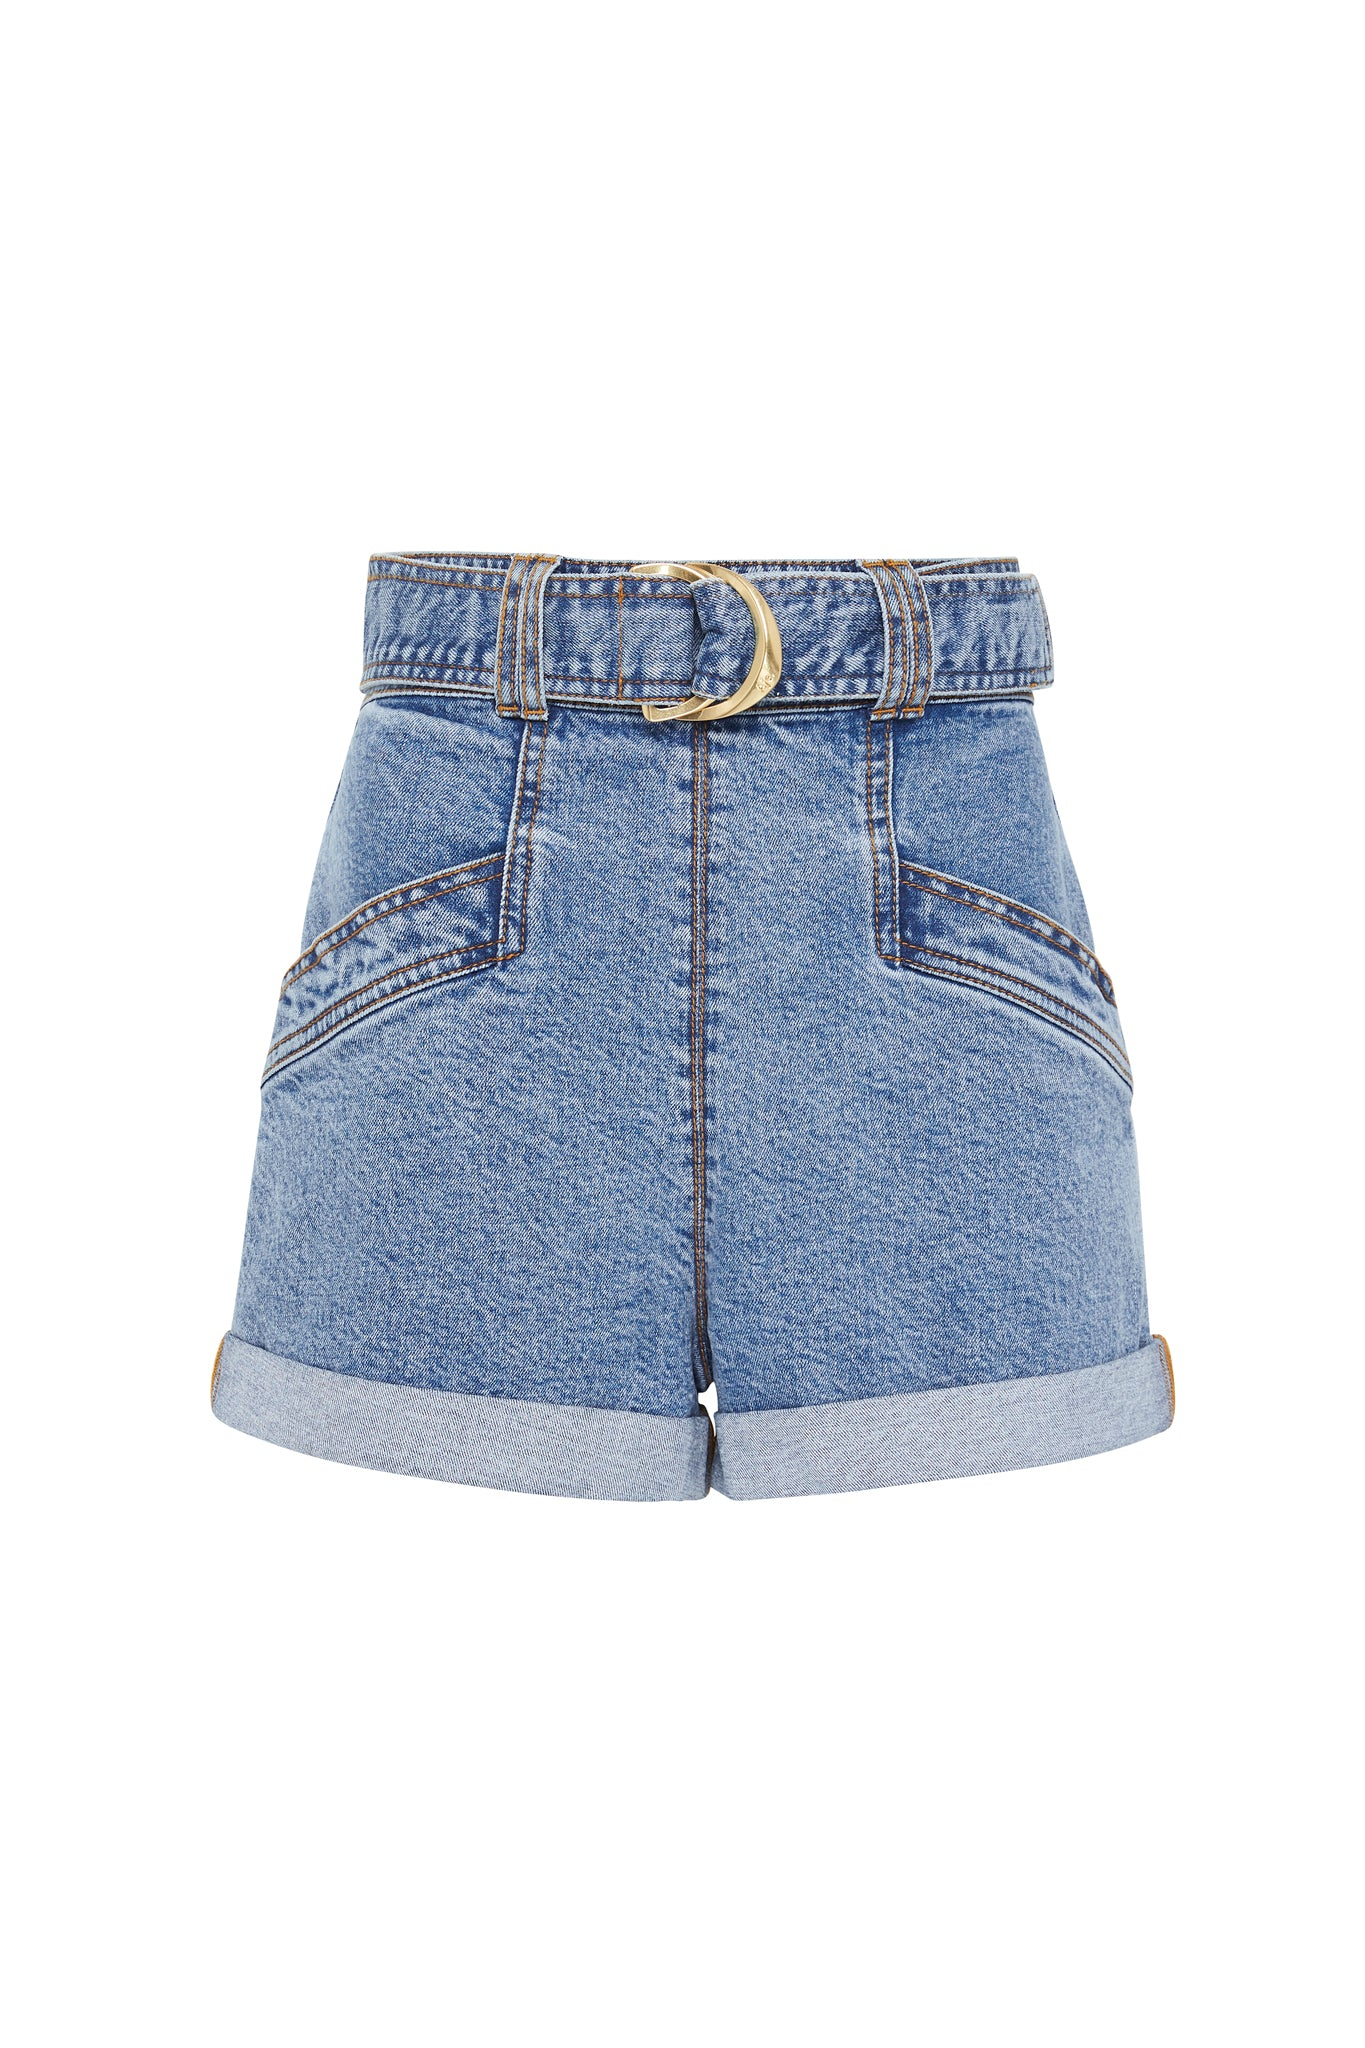 Mimosa Denim Short Product View